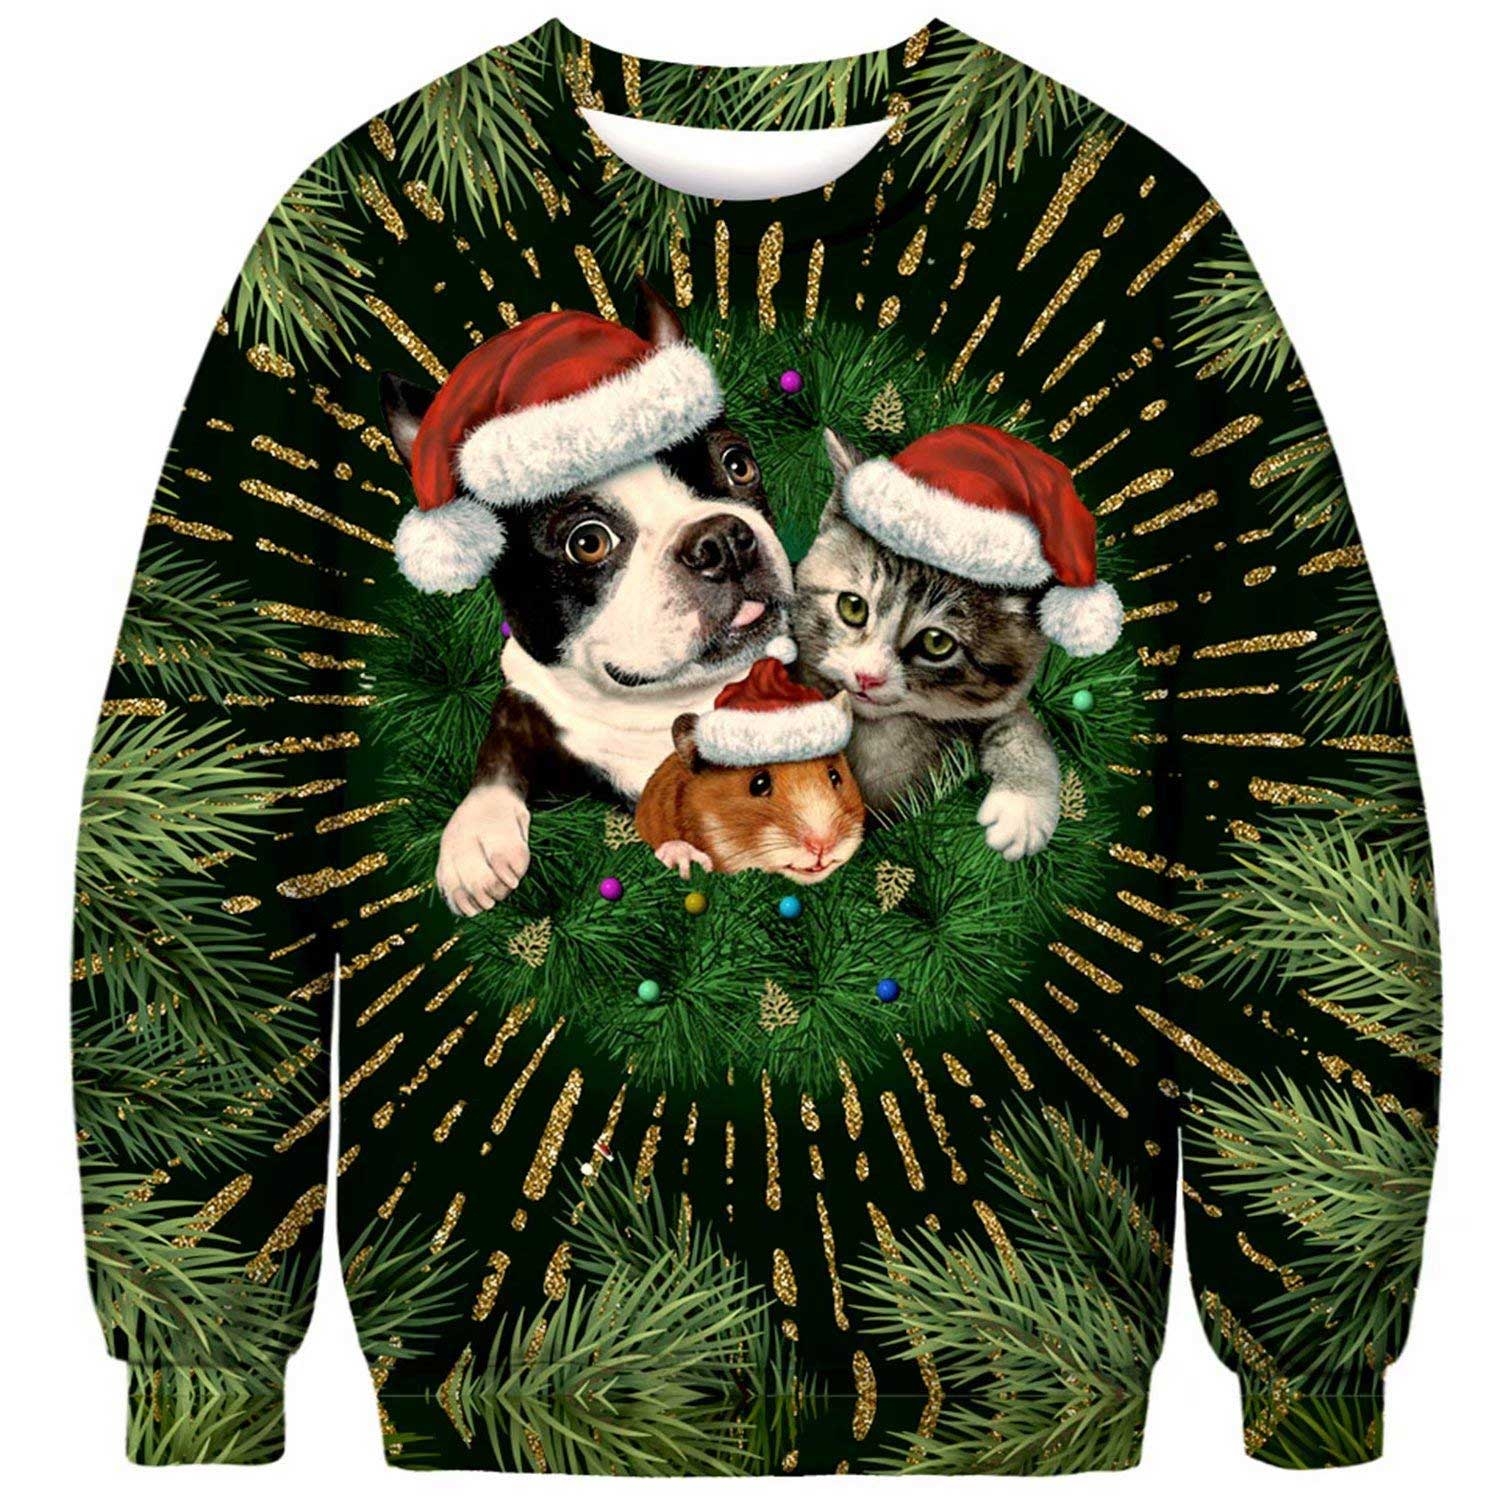 Boston Terrier Christmas Sweater.Xmas Dog Cat And Mouse Ugly Christmas Sweatshirt